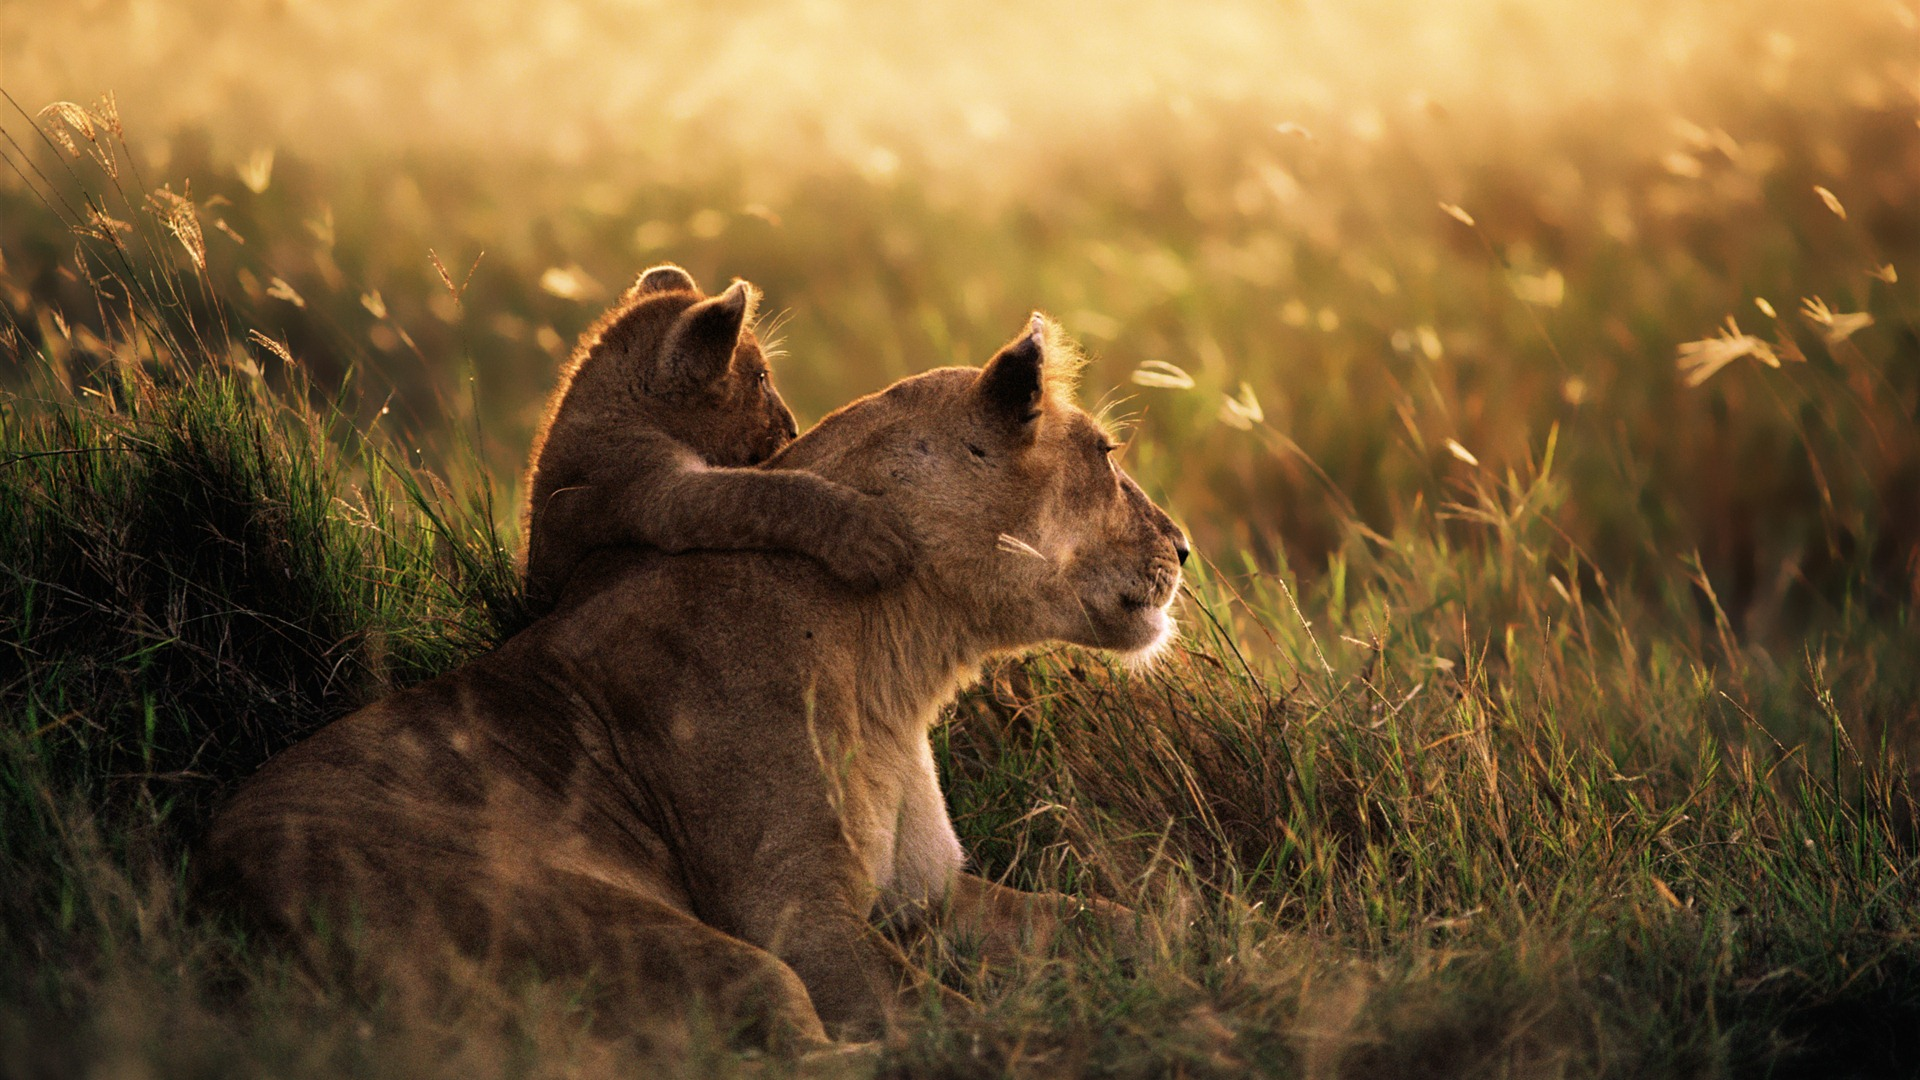 cub-with-her-mom-wallpaper-wpc9003880